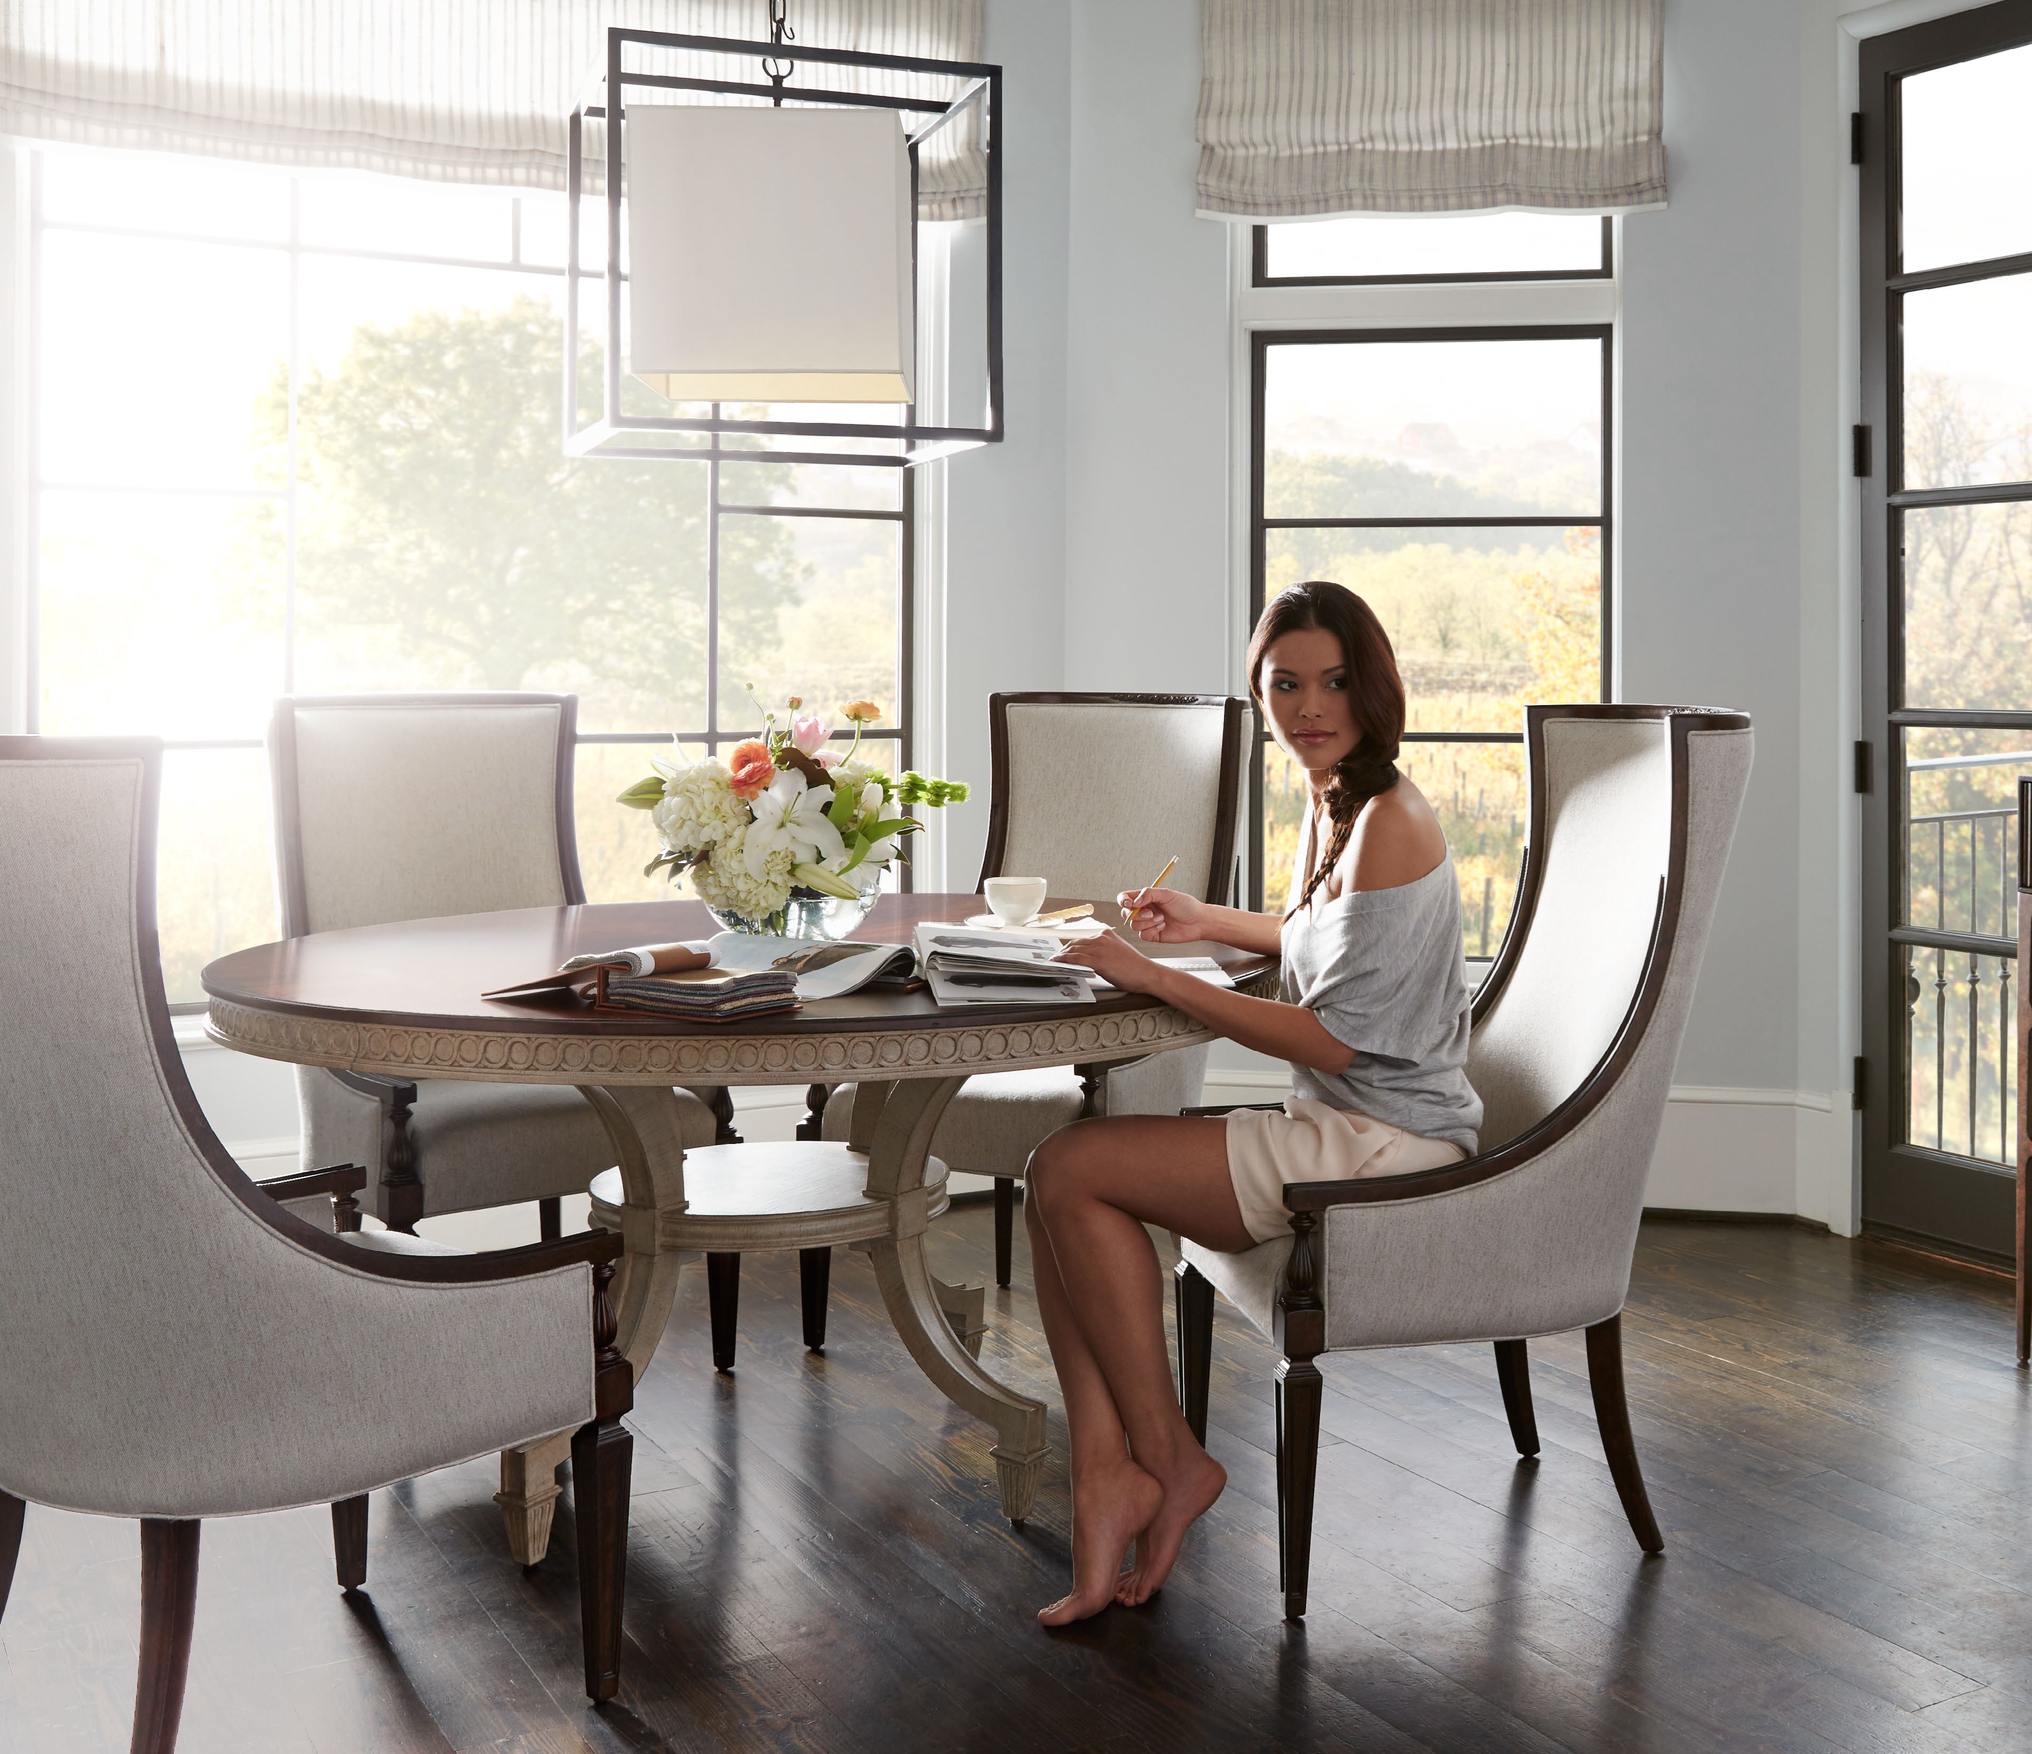 Transitional Dining Room With Roman Shades And Clean Lines